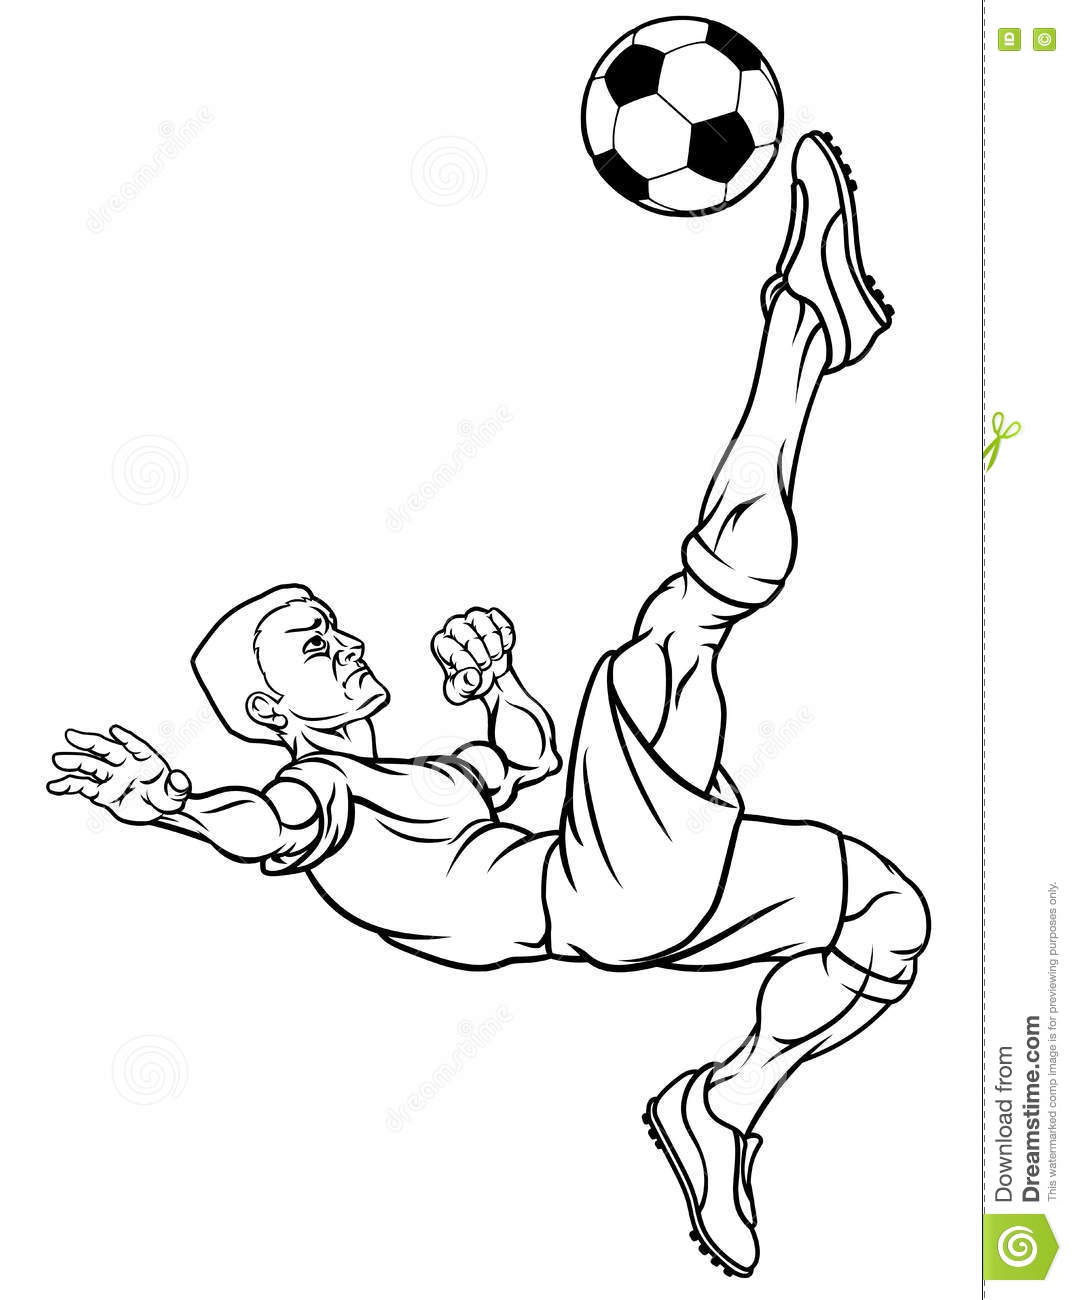 Caucasian Cartoon Football Man Cartoon Vector